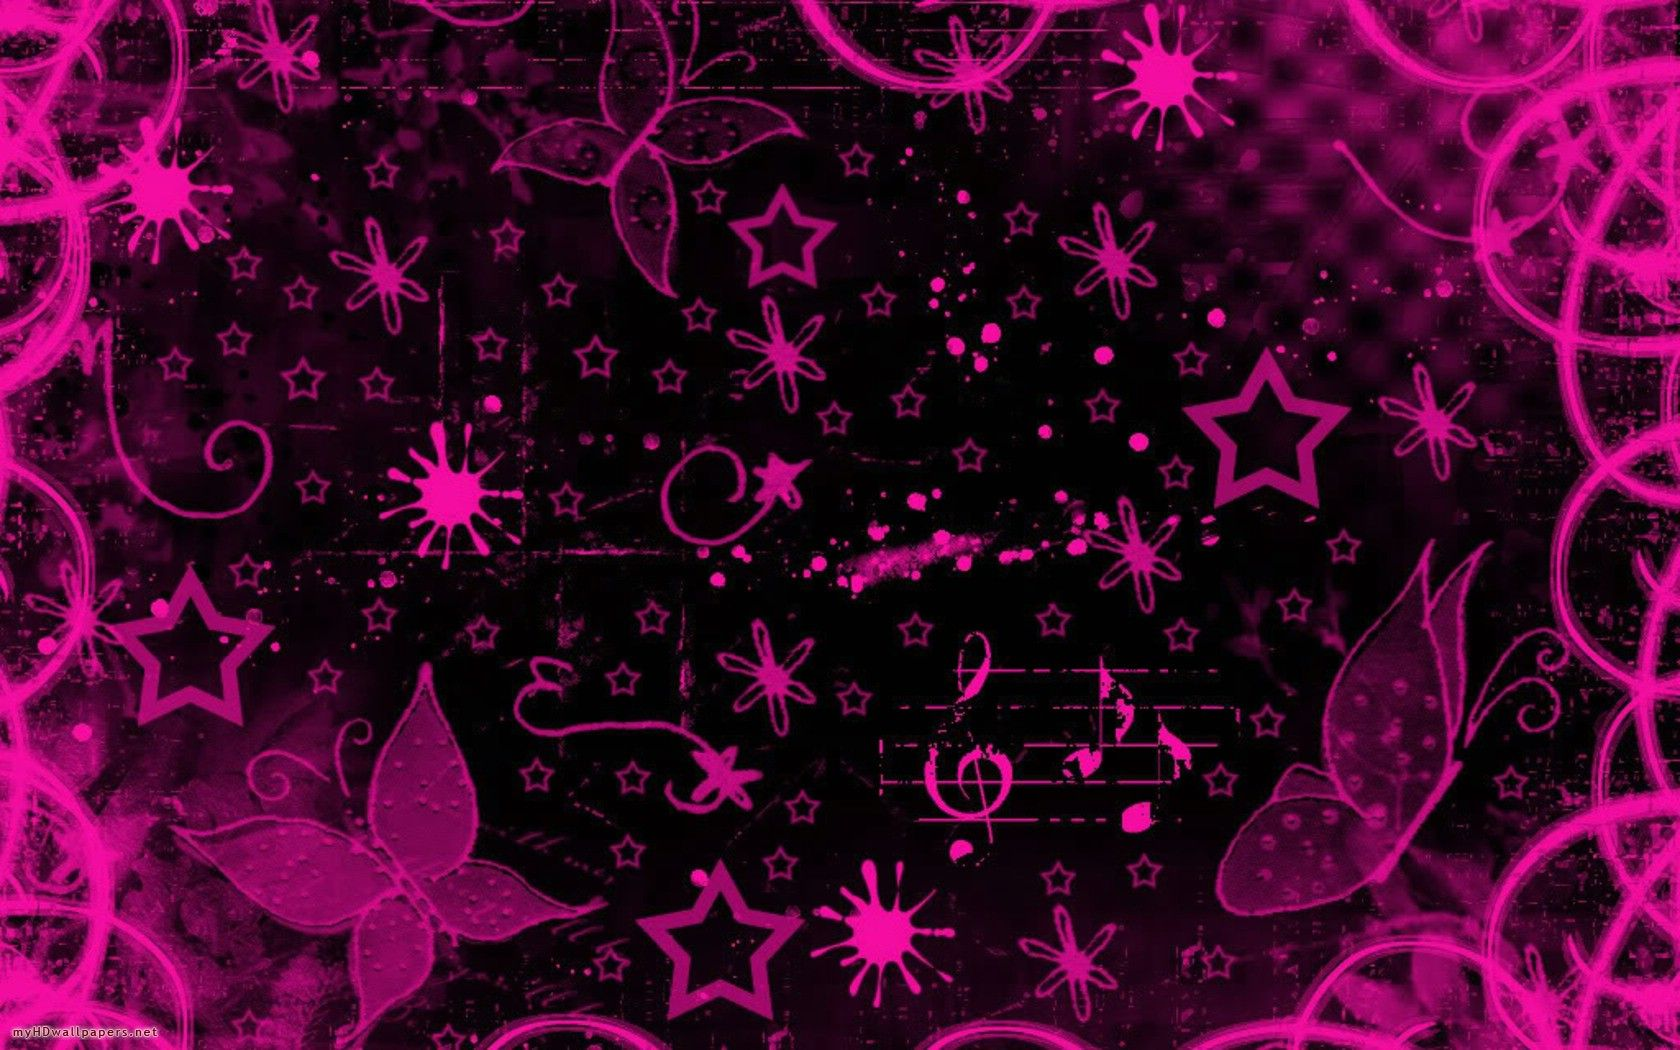 Cool Pink And Black Wallpaper Best Wallpaper Hd Butterfly Wallpaper Pink And Black Wallpaper Pink Abstract